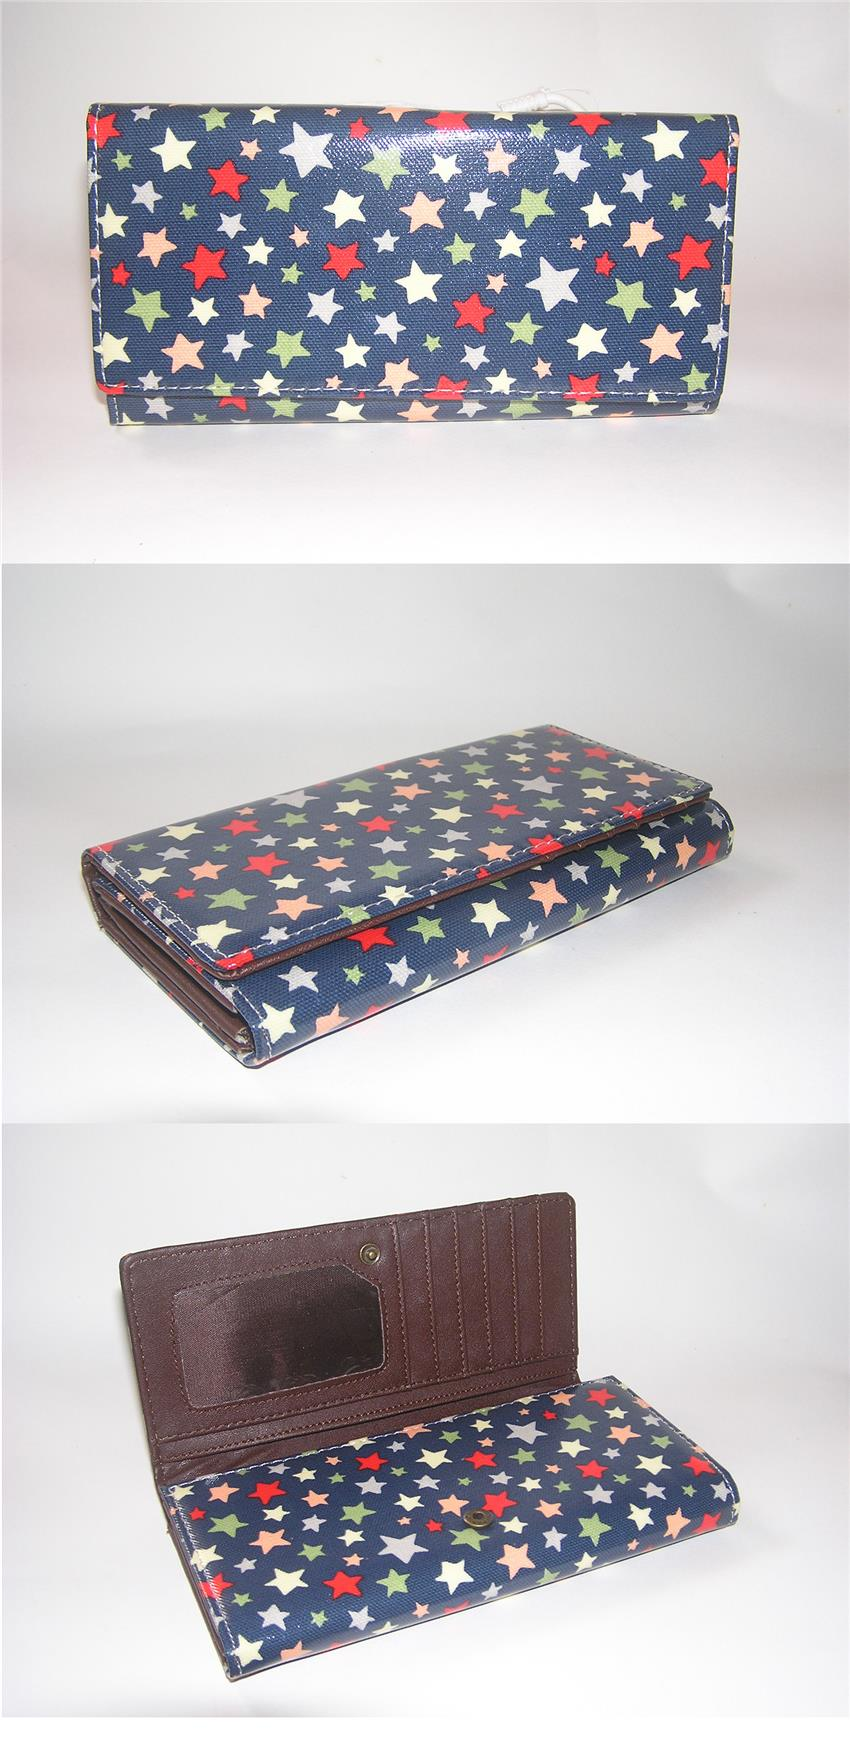 Fashion Purse Long Wallet Star Printing Clutch Handbag - S094